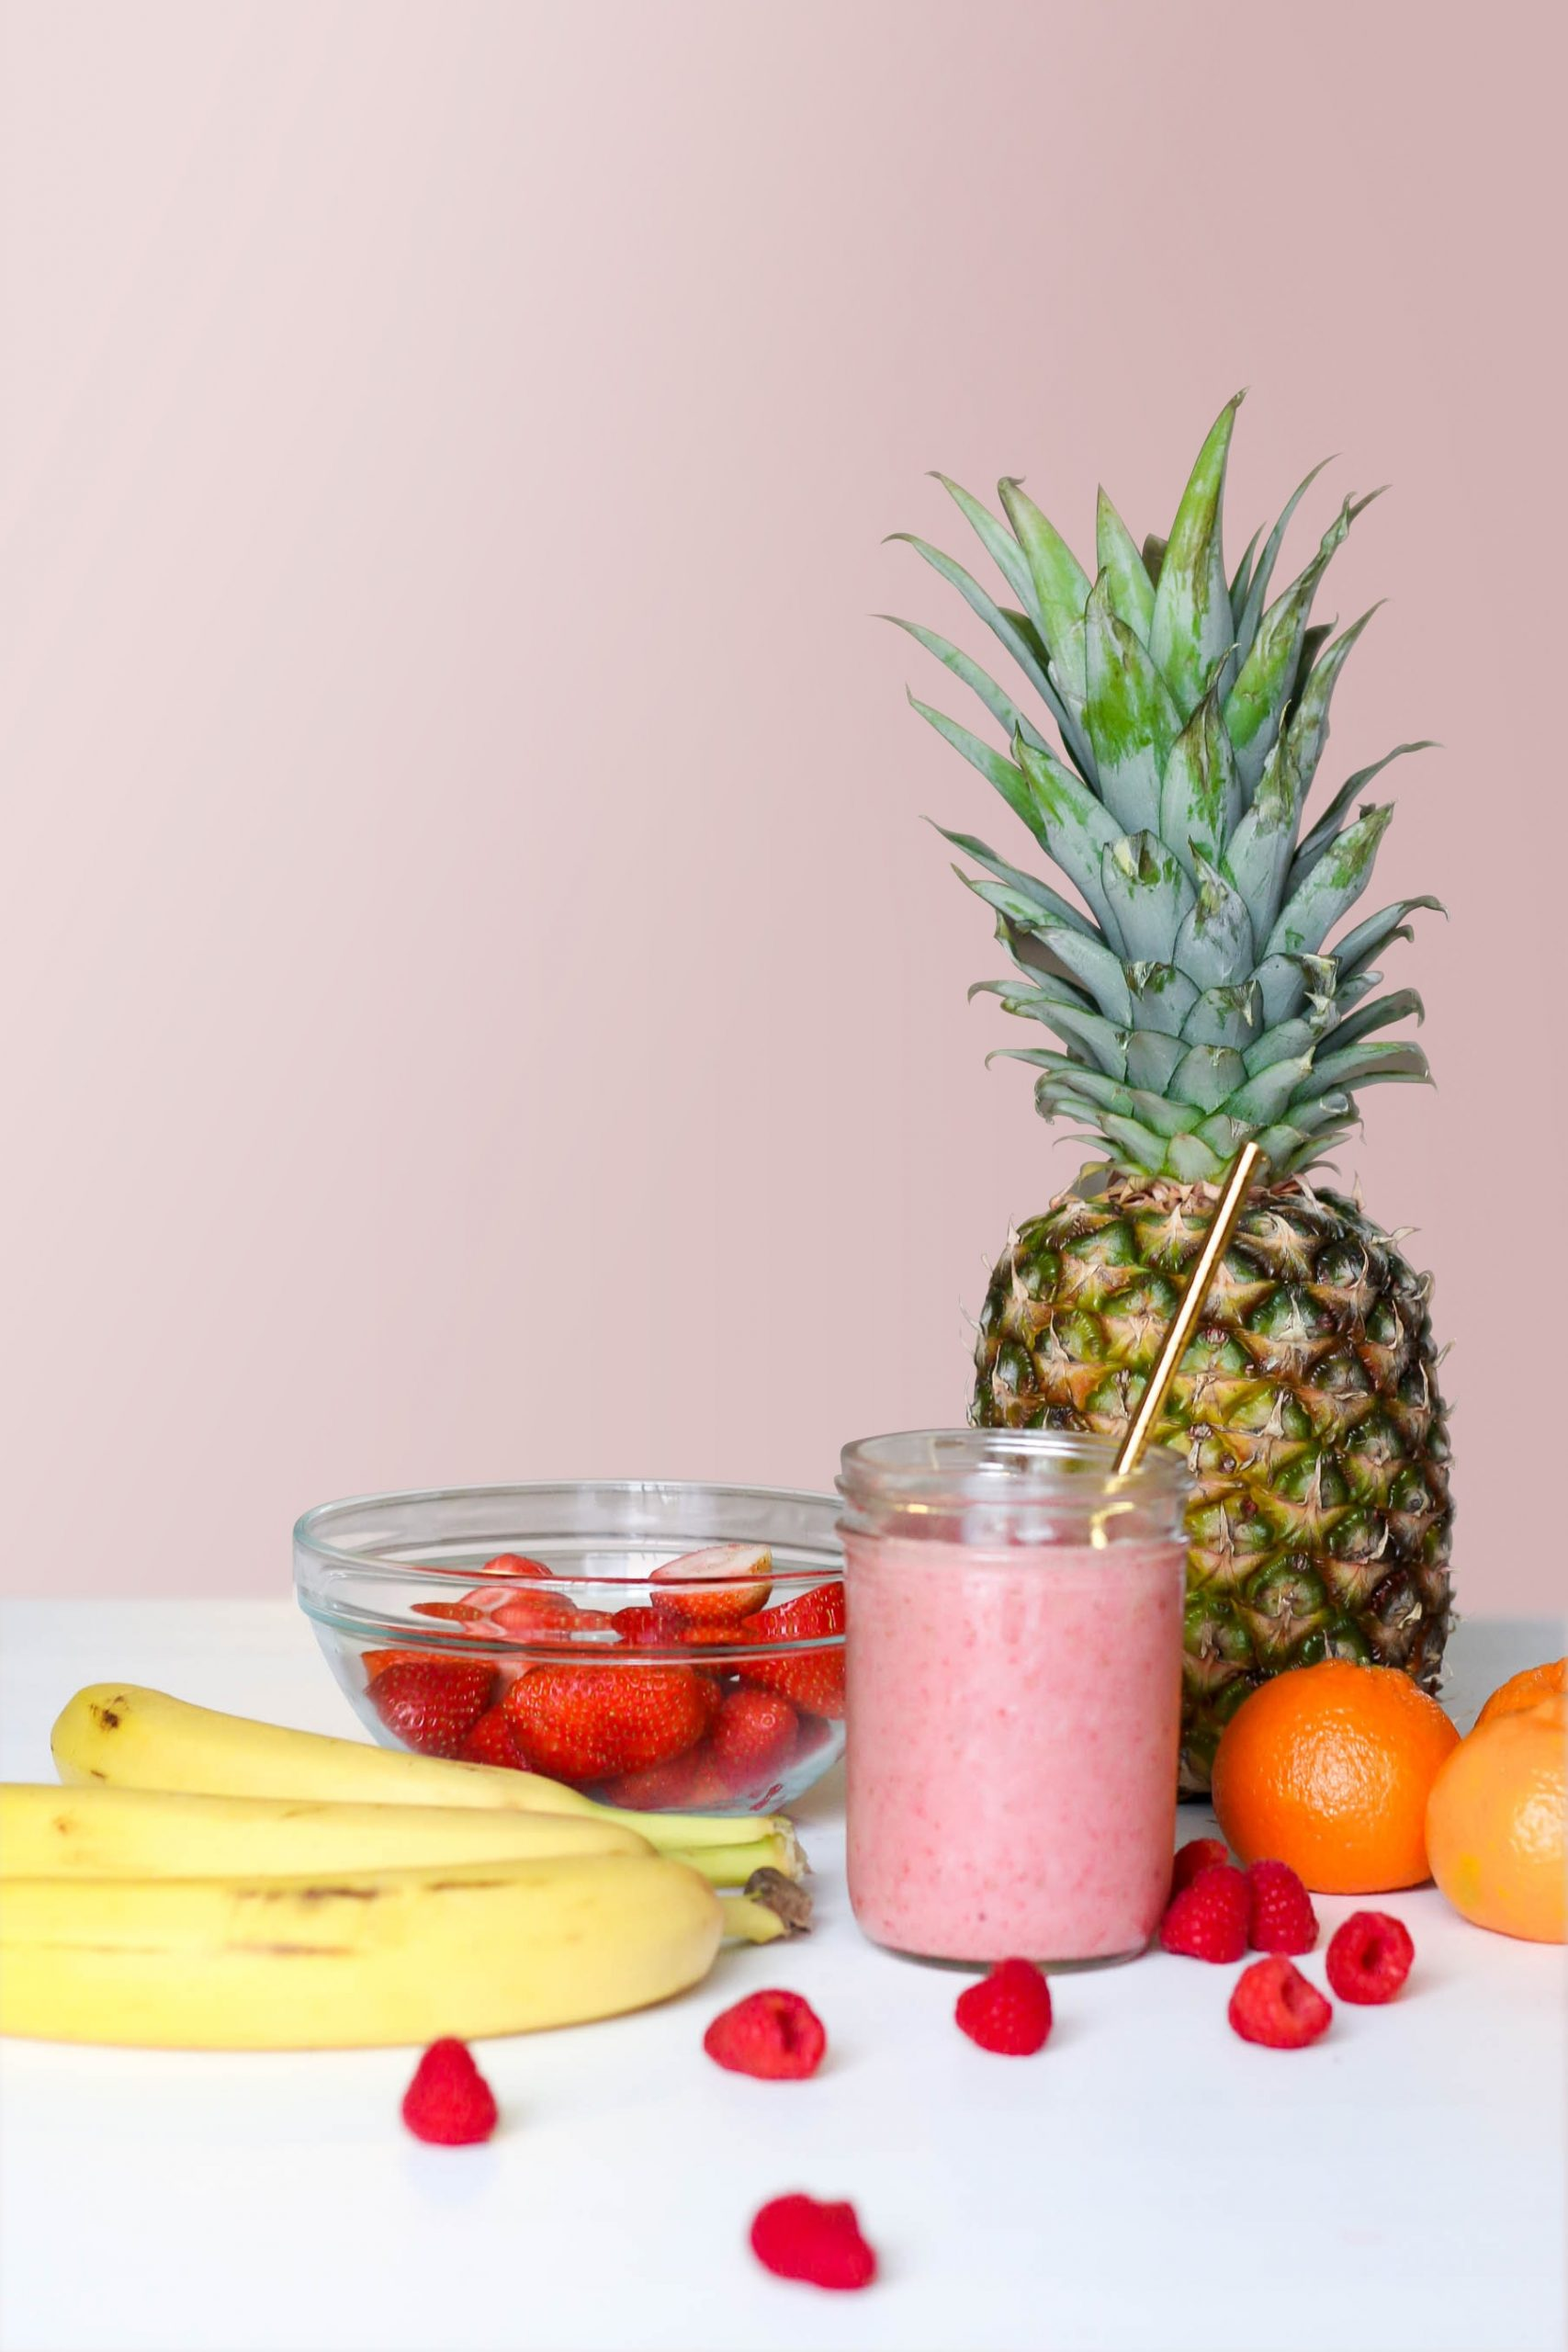 maintaining your health